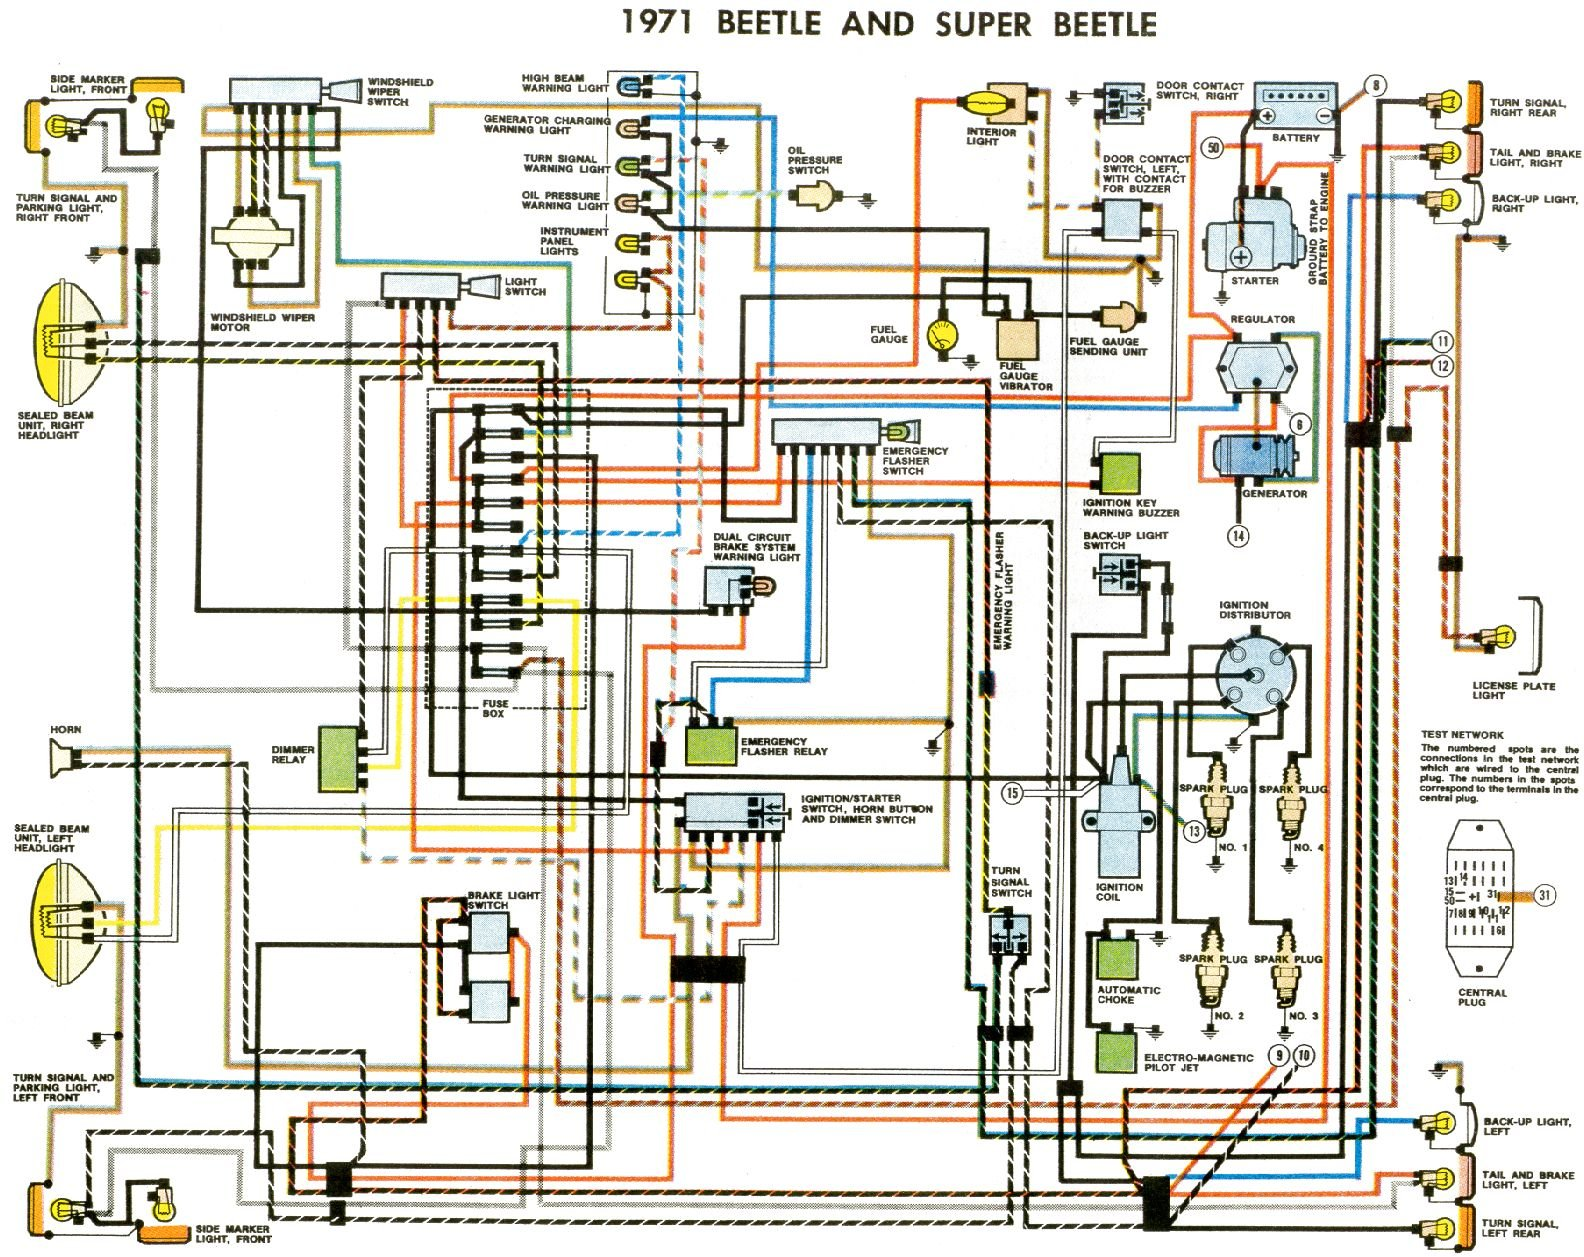 bug_71 1971 beetle wiring diagram (usa) thegoldenbug com volkswagen 2002 beetle wiring diagram at edmiracle.co